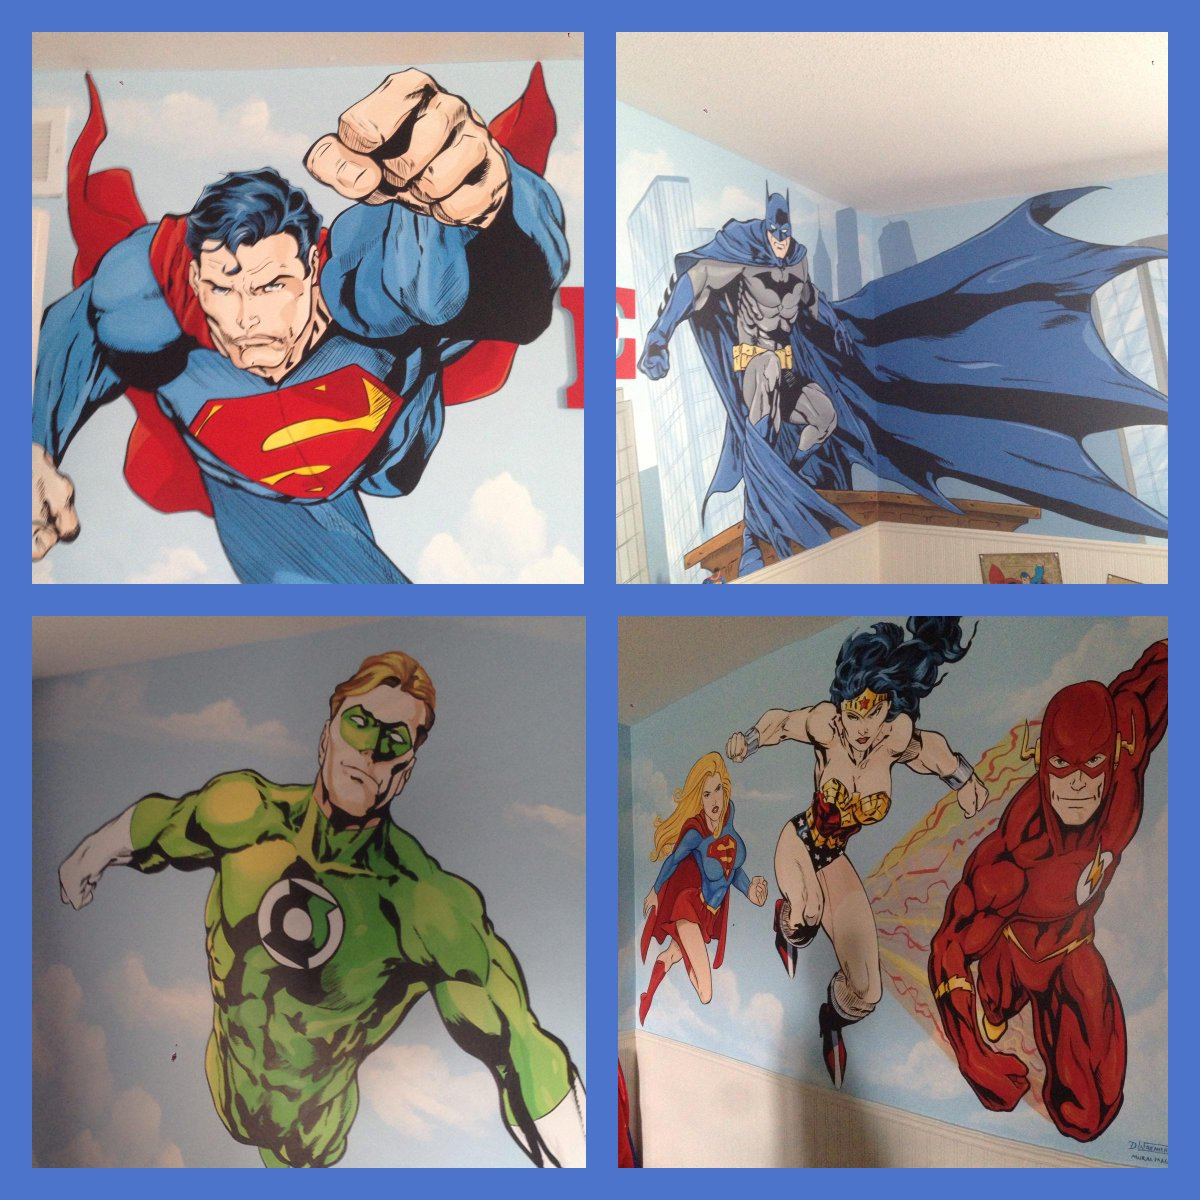 Hey @Nice_Jewish_Boy - took some shot of wall murals my nephew commissioned for his son's room. #DCRocks http://t.co/5N8U7PyeQ3